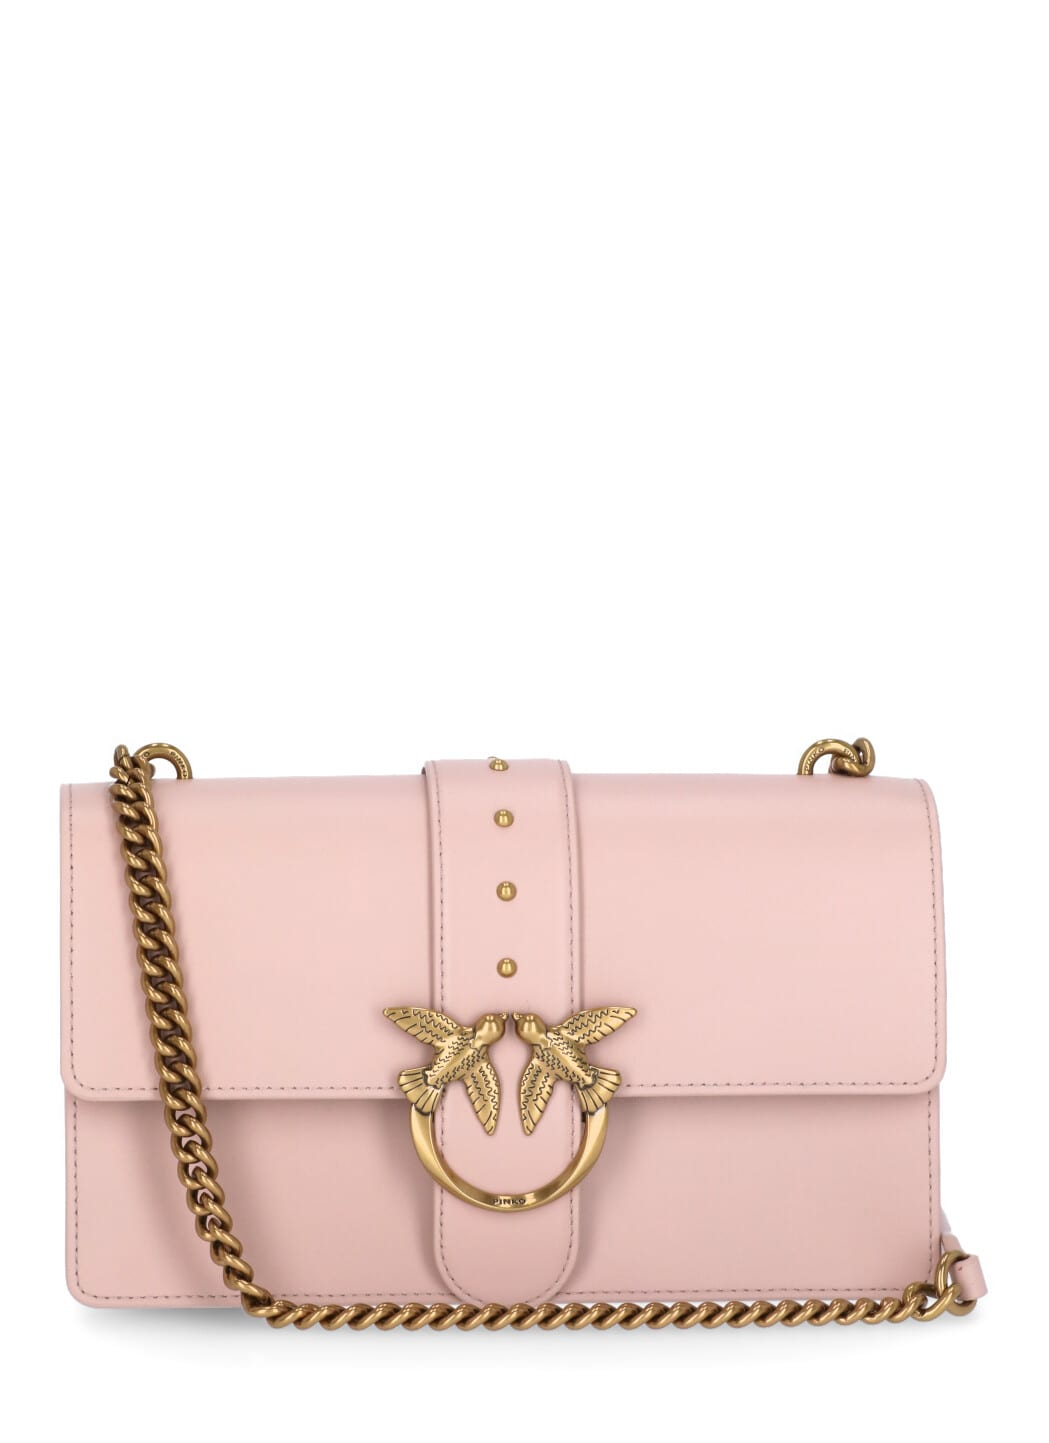 Pinko Leathers LOVE ICON SIMPLY BAG